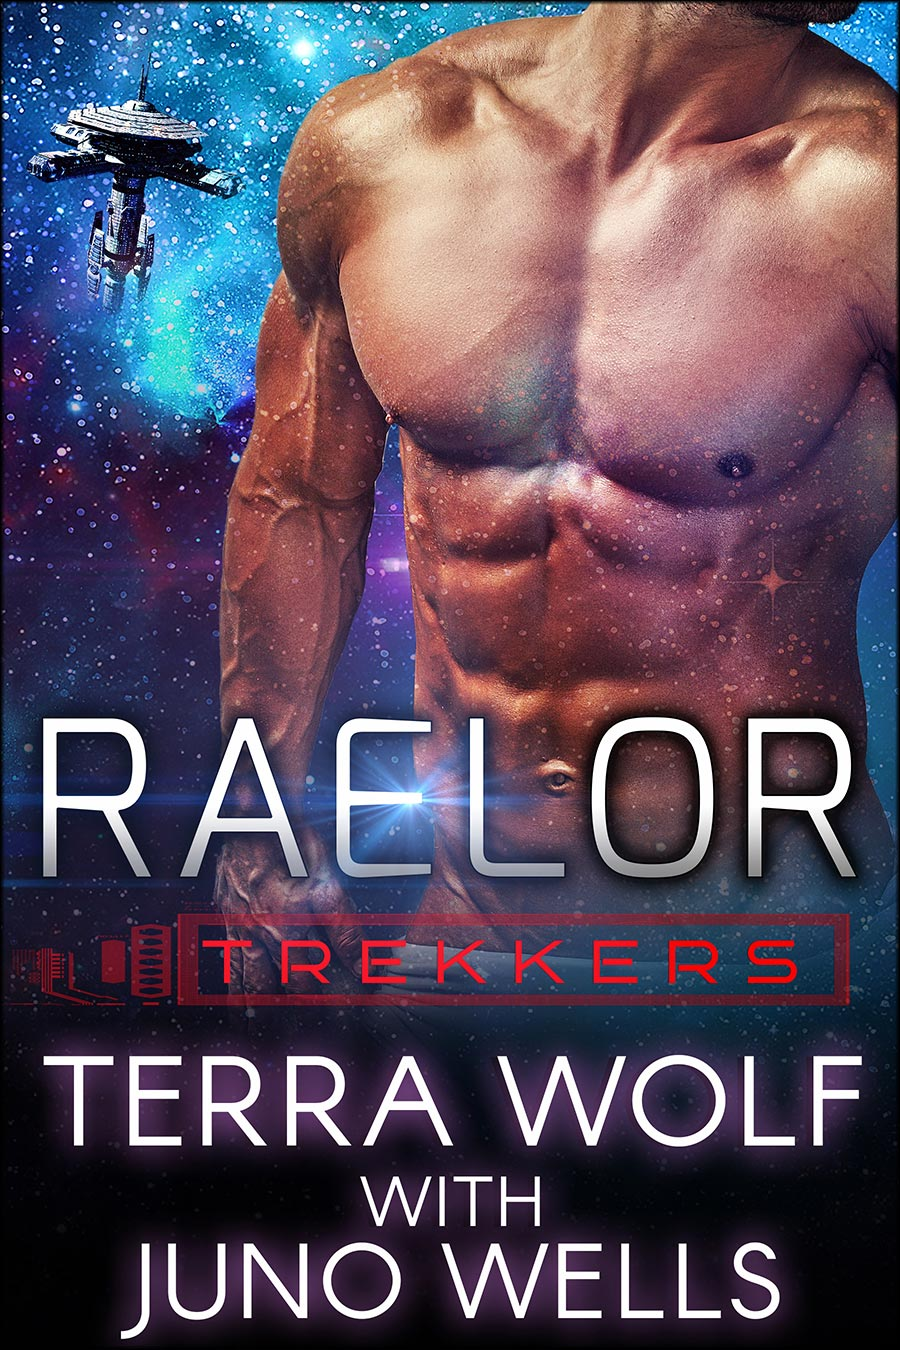 Raelor---Trekkers-cover---Terra-Wolf-and-Juno-Wells.jpg